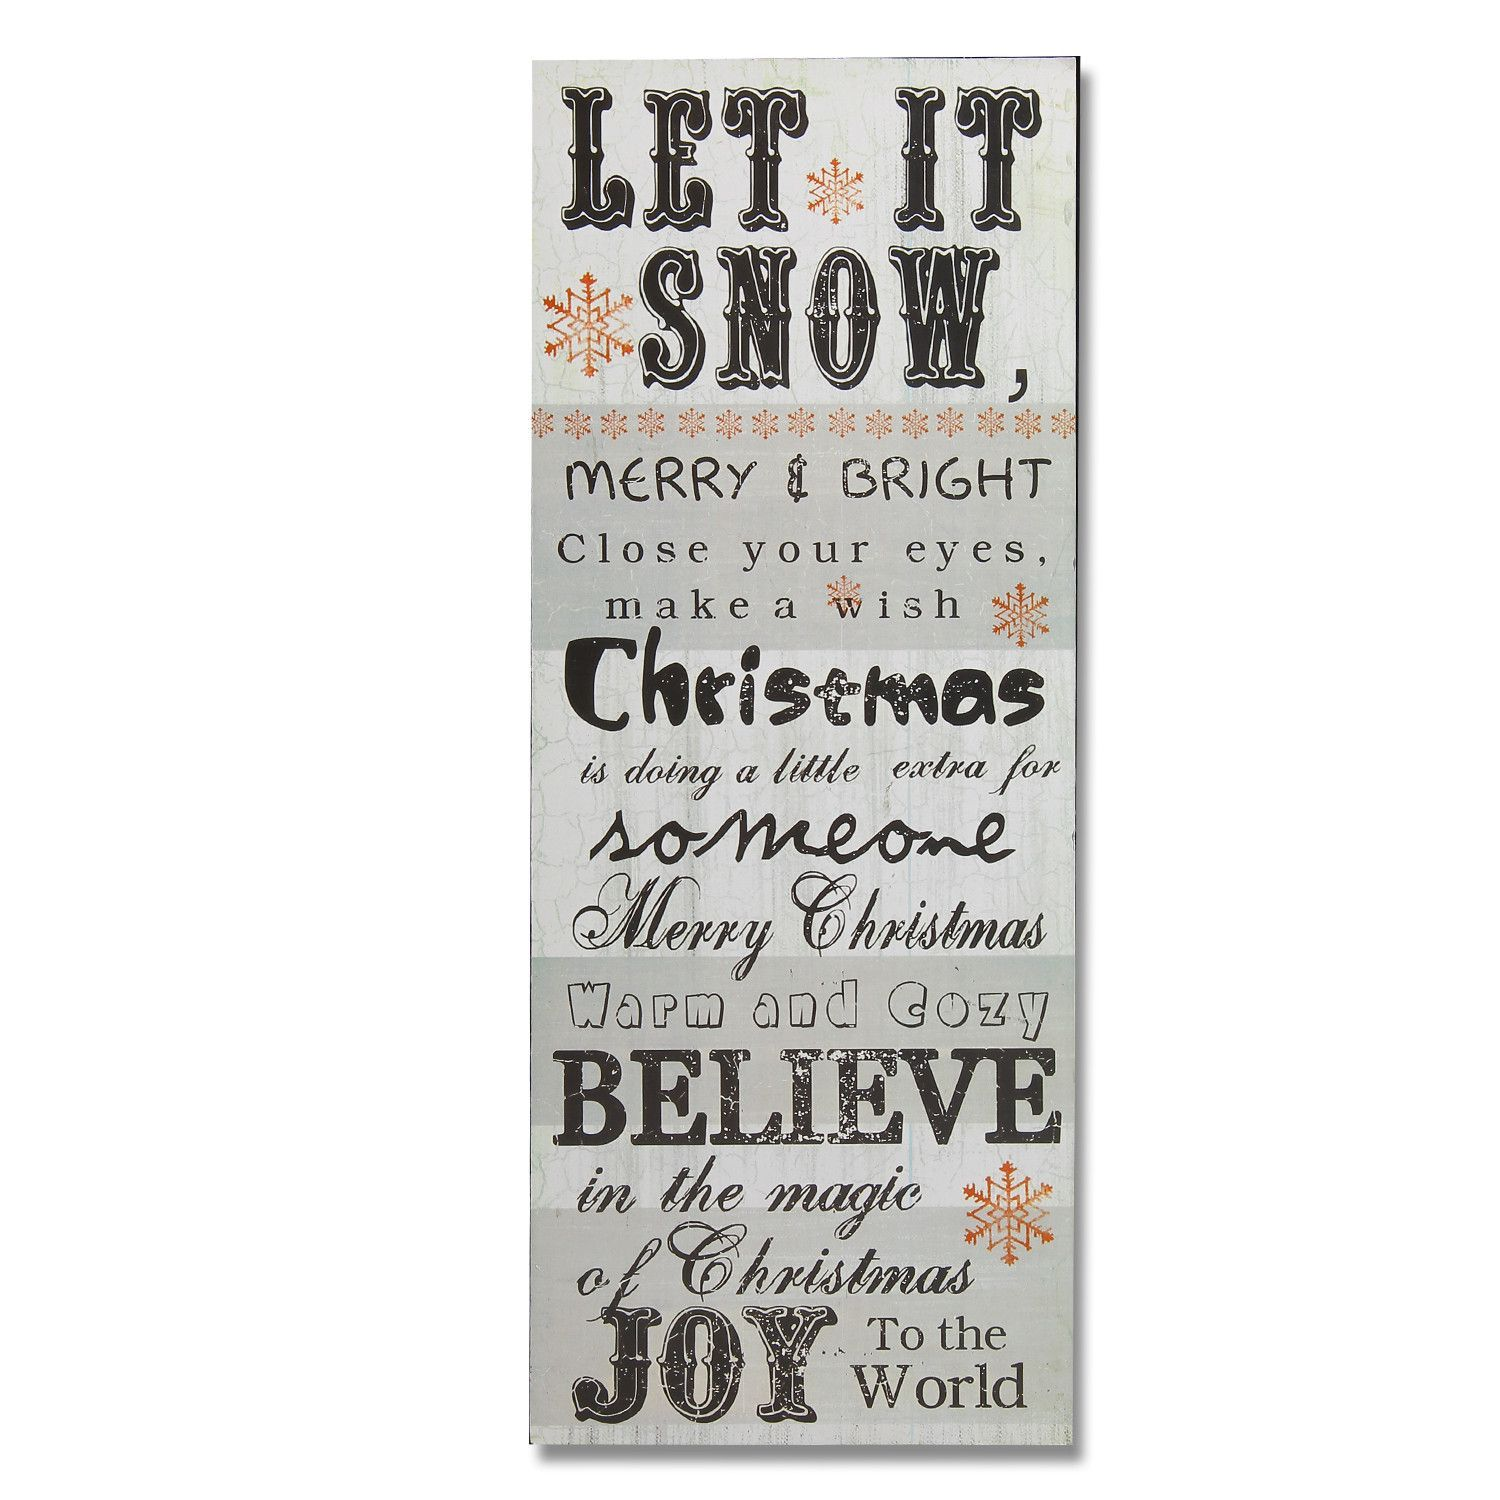 Word Wall Decor Plaques Signs Magnificent Buy Furnistar Decorative Wood Wall Hanging Sign Plaque Christmas 2018